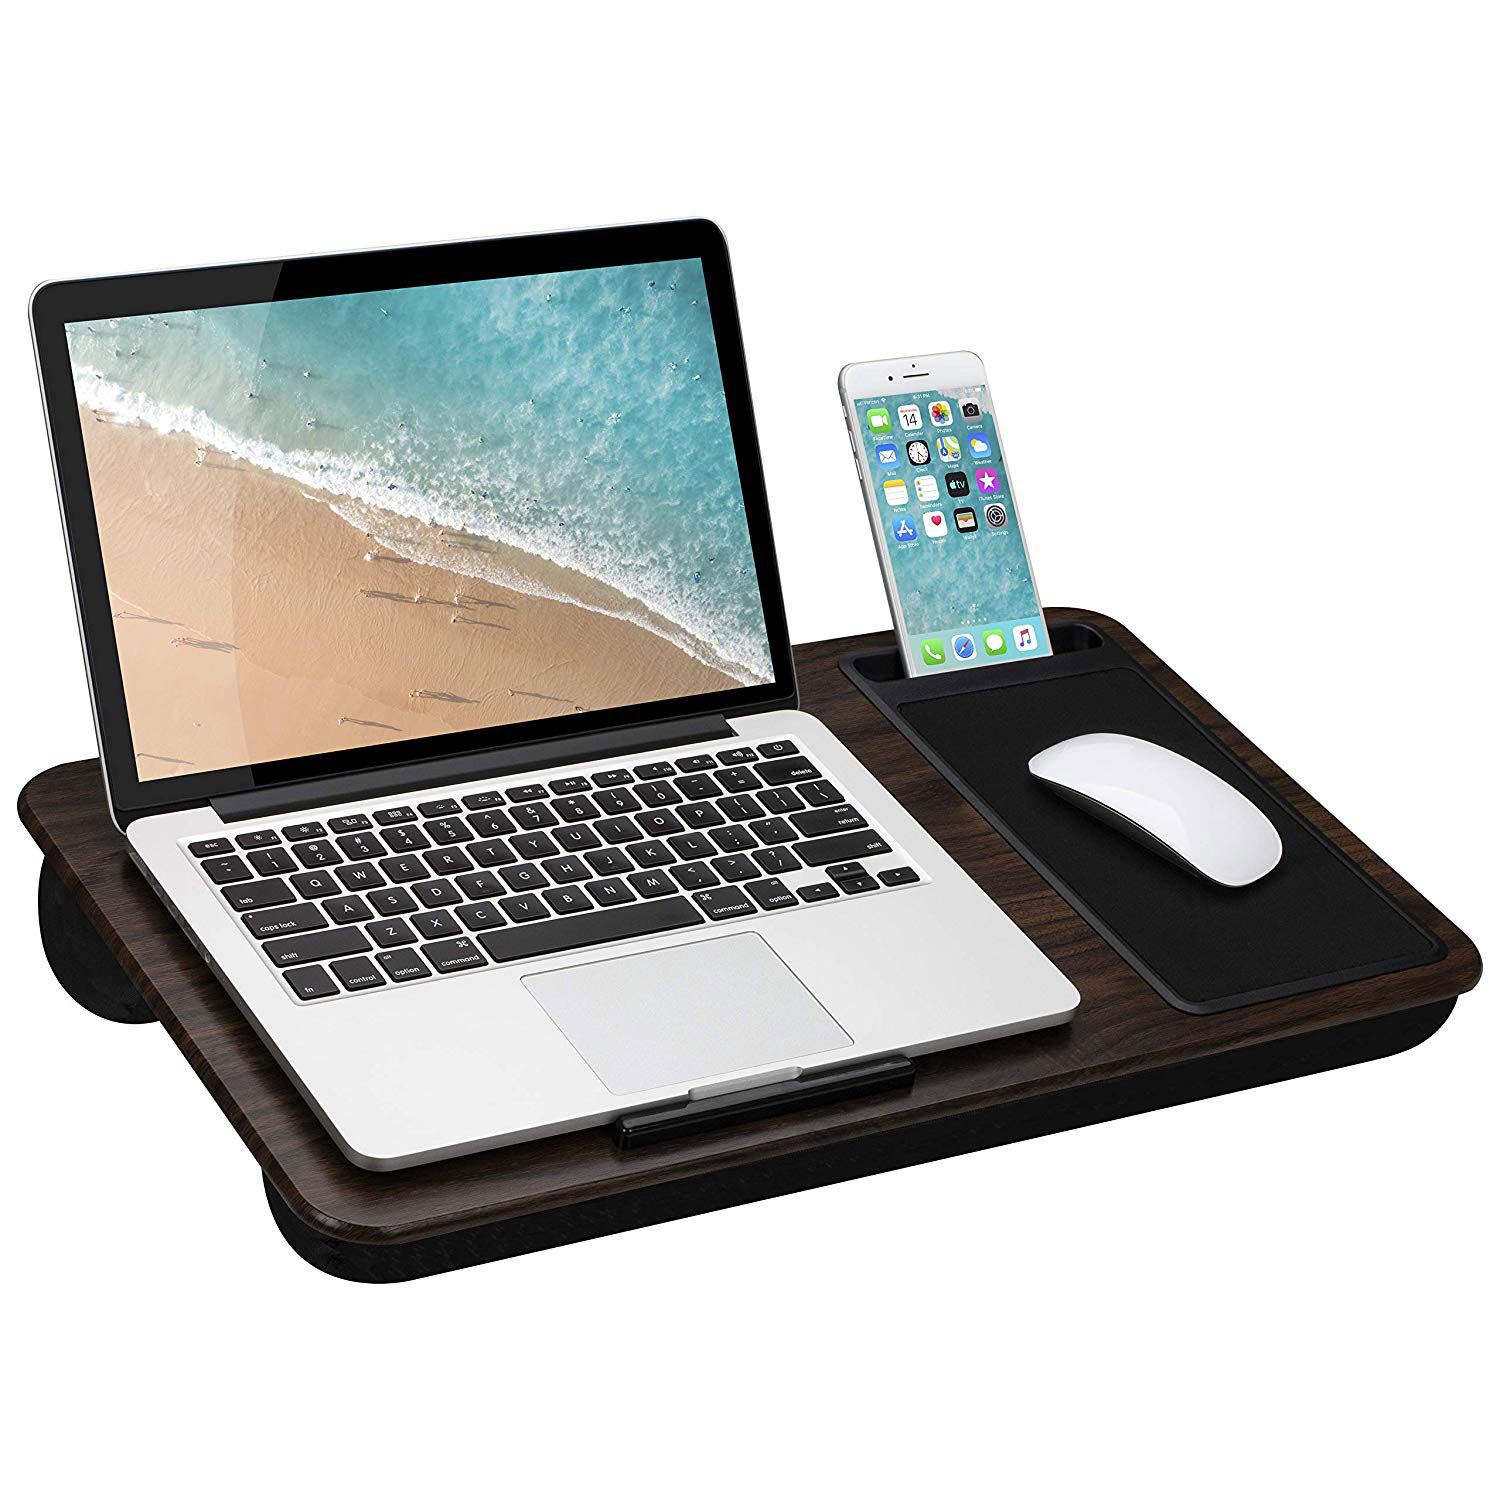 LapGear Home Office Lap Desk with Device Ledge